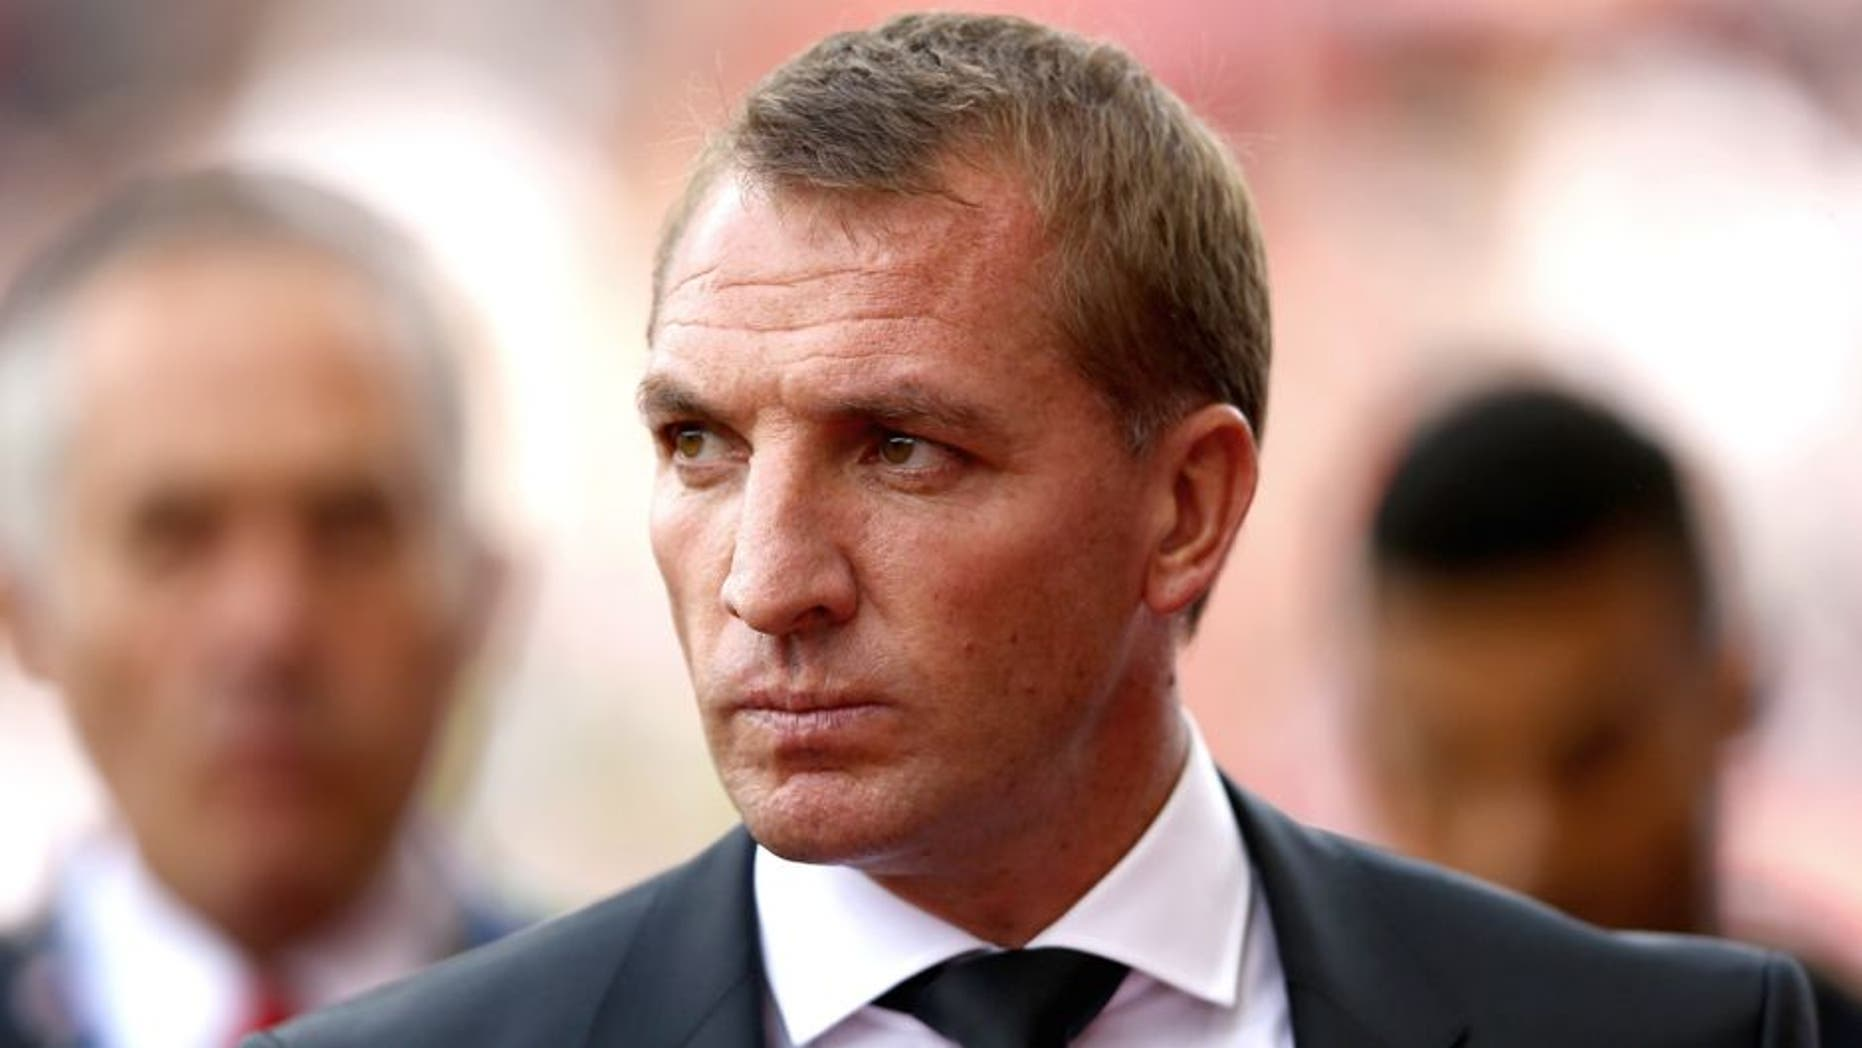 STOKE ON TRENT, ENGLAND - AUGUST 09: Liverpool manager Brendan Rodgers during the Barclays Premier League match between Stoke City and Liverpool at Britannia Stadium on August 9, 2015 in Stoke on Trent, England. (Photo by Clive Brunskill/Getty Images)